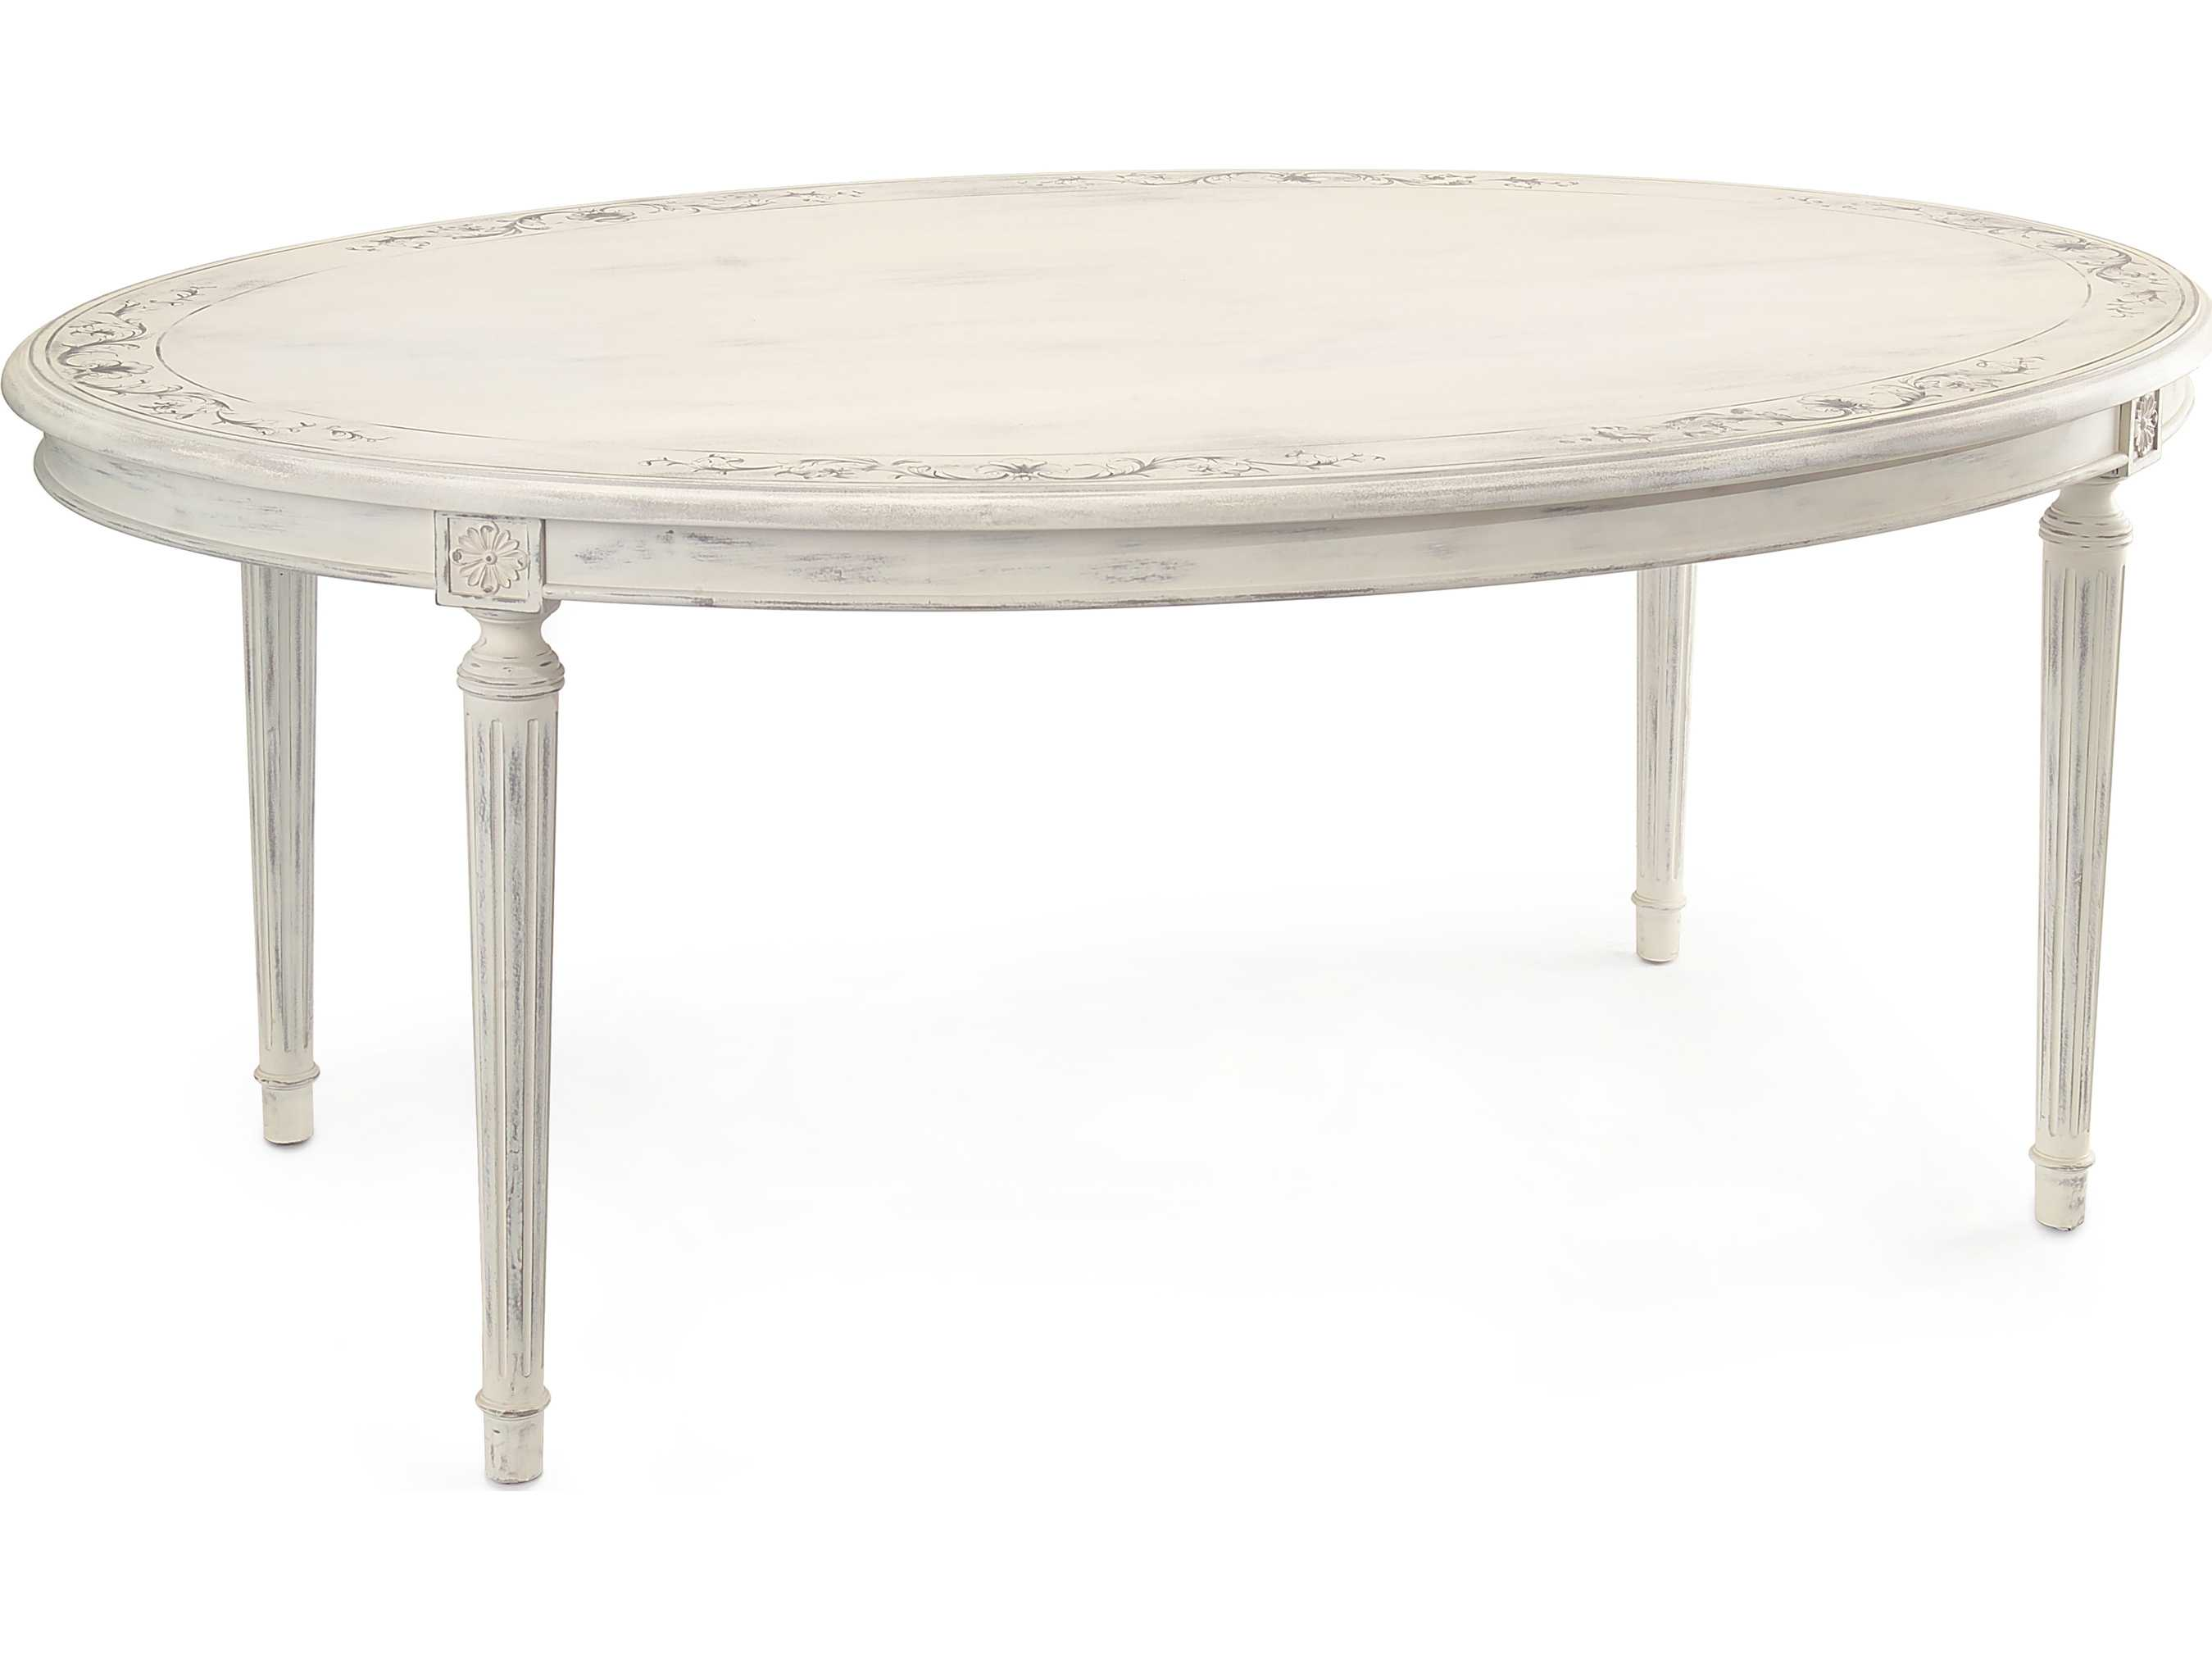 John Richard Talleyrand 72 X 46 Oval Casual Dining Table